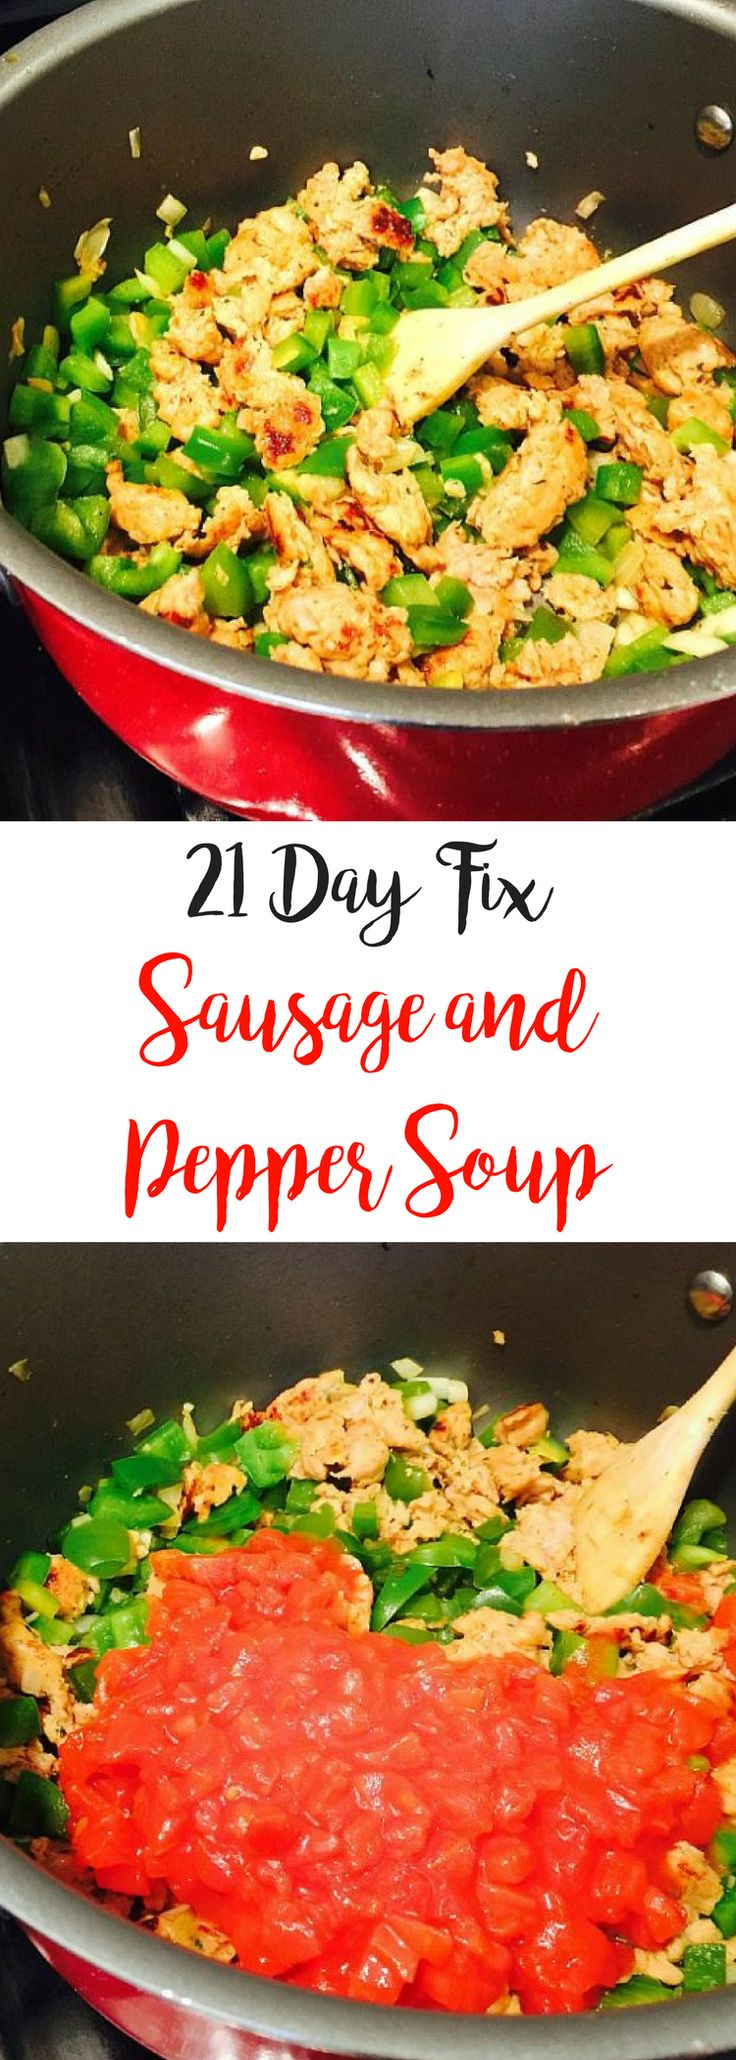 21 Day Fix Sausage and Pepper Soup | Confessions of a Fit Foodie